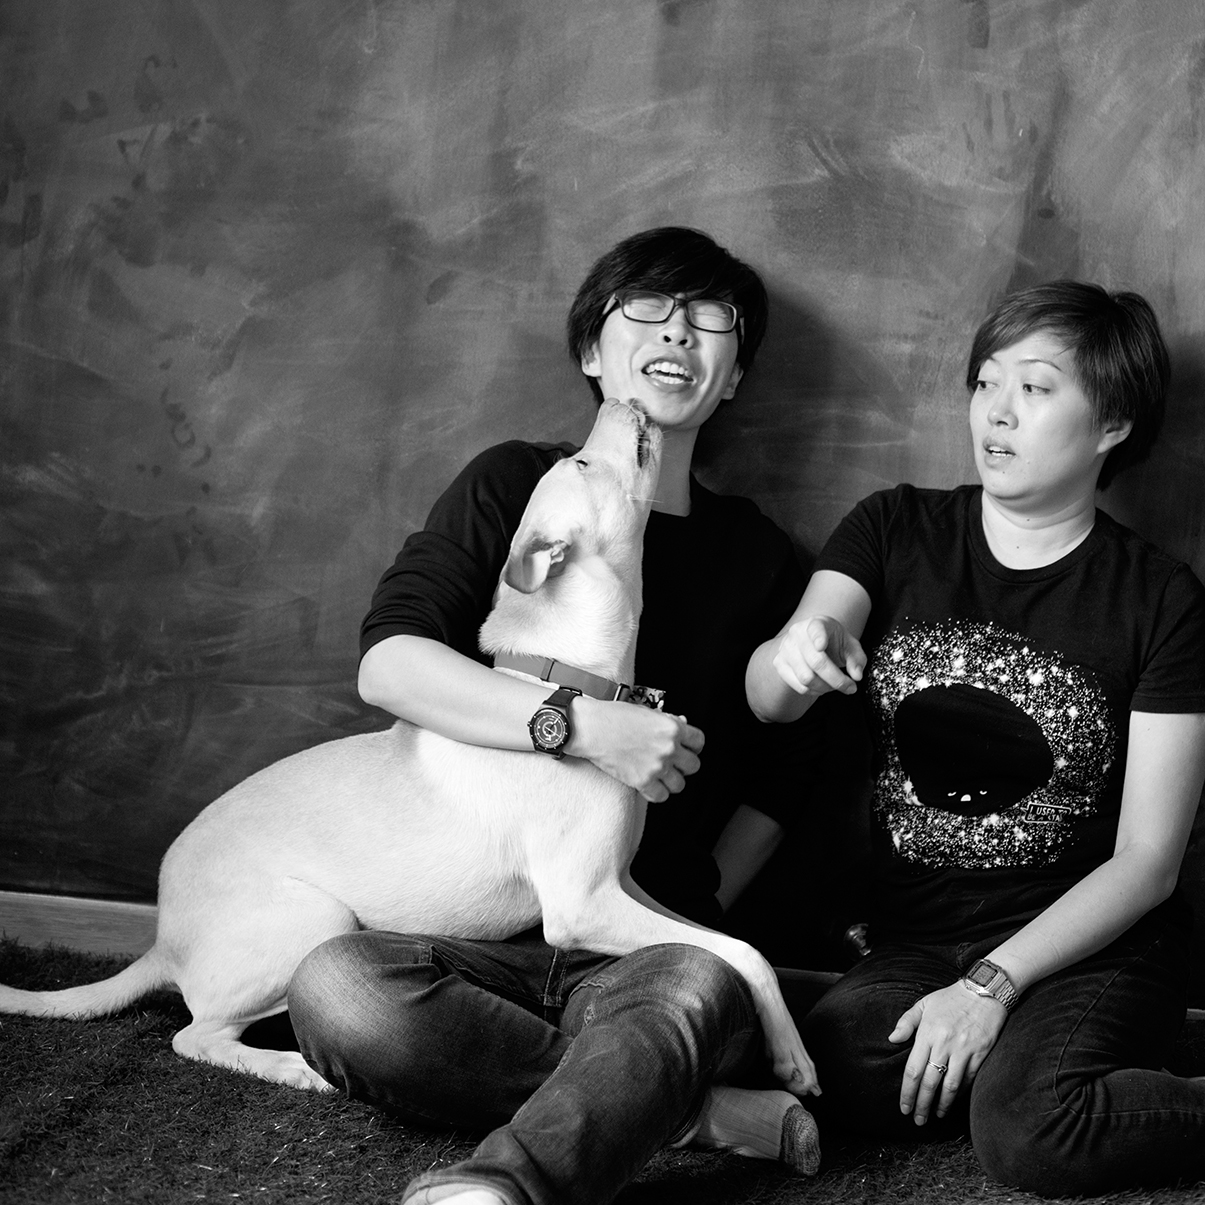 family-dog-studio-photography-js-04